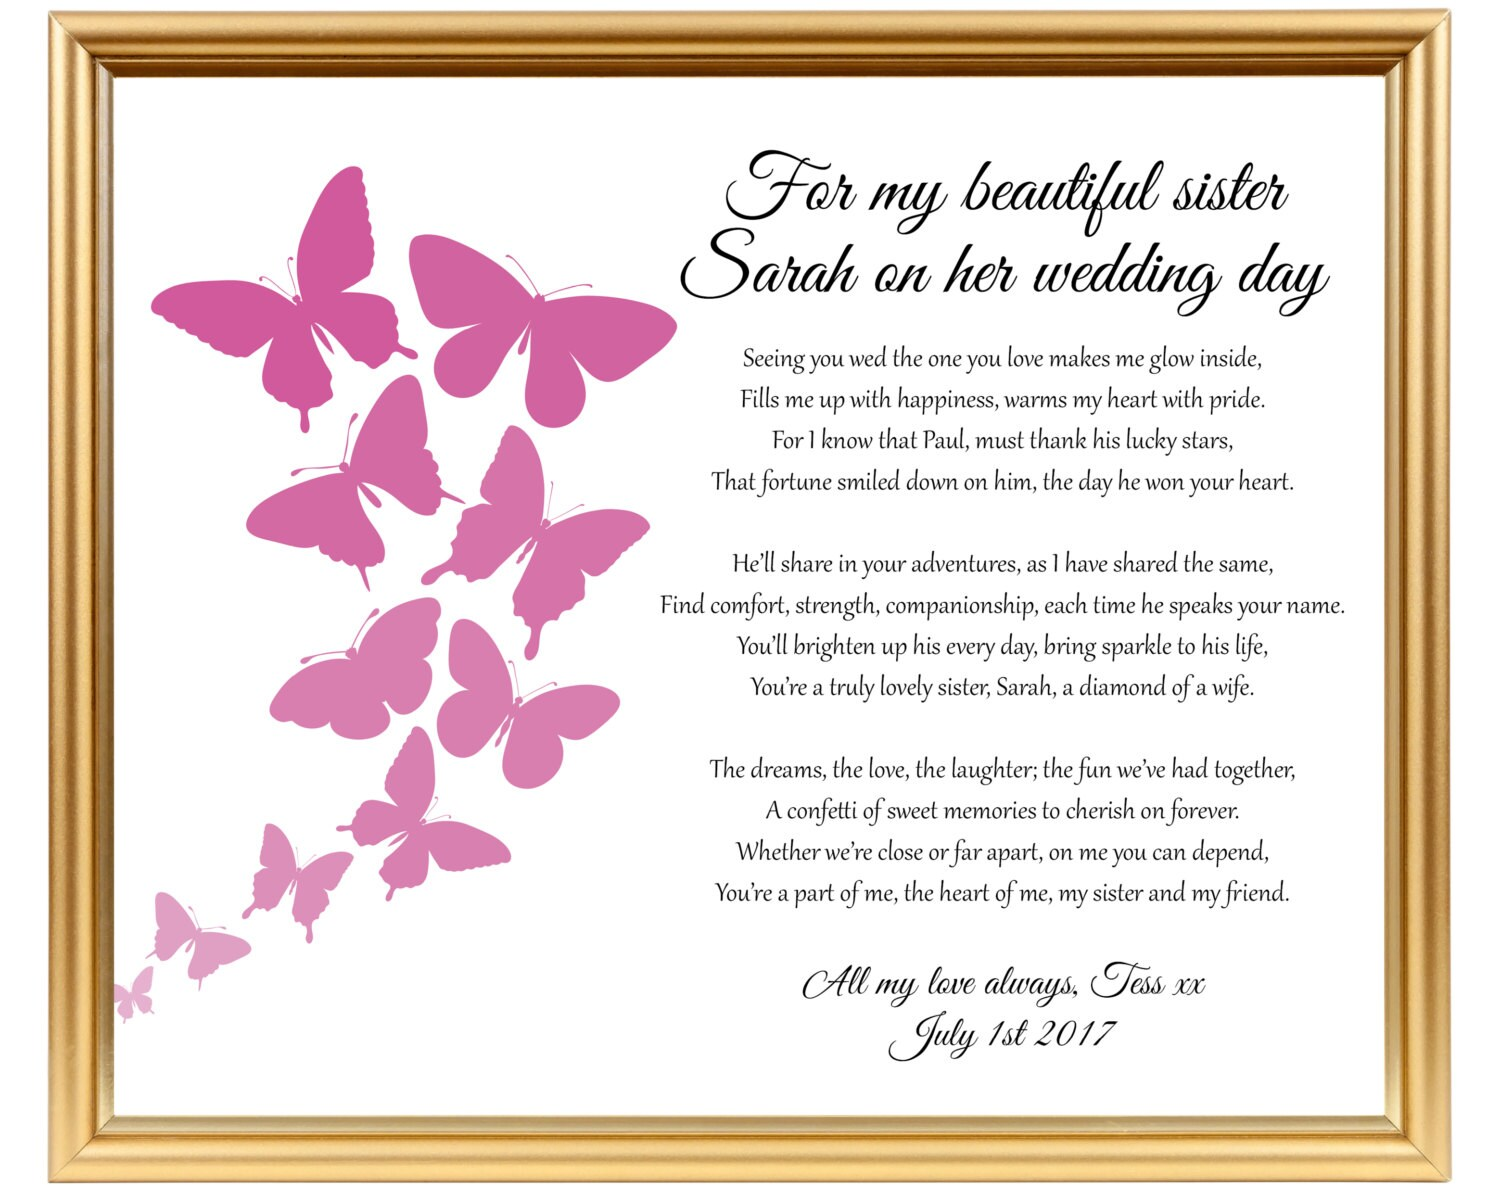 Perfect Wedding Gift For Sister: Sister Wedding Gift Wedding Gift Poem For Sister Gifts For